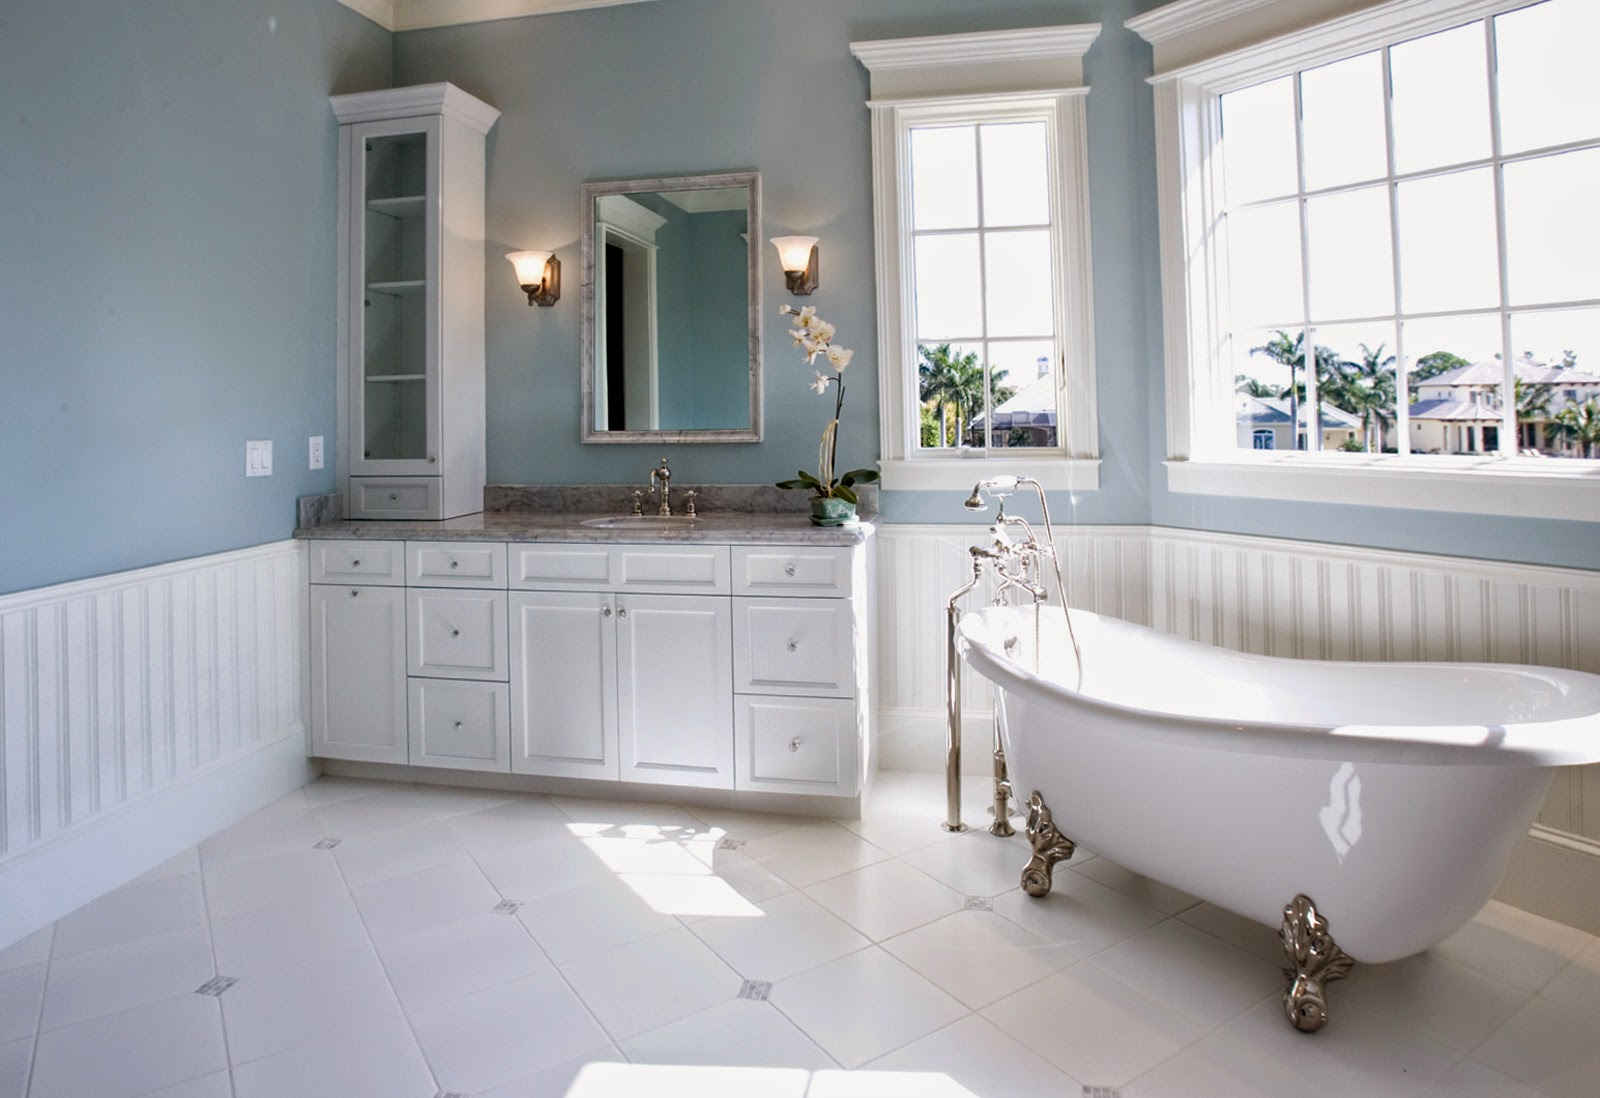 Top 10 beautiful bathroom design 2014 home interior blog for Gorgeous bathroom designs